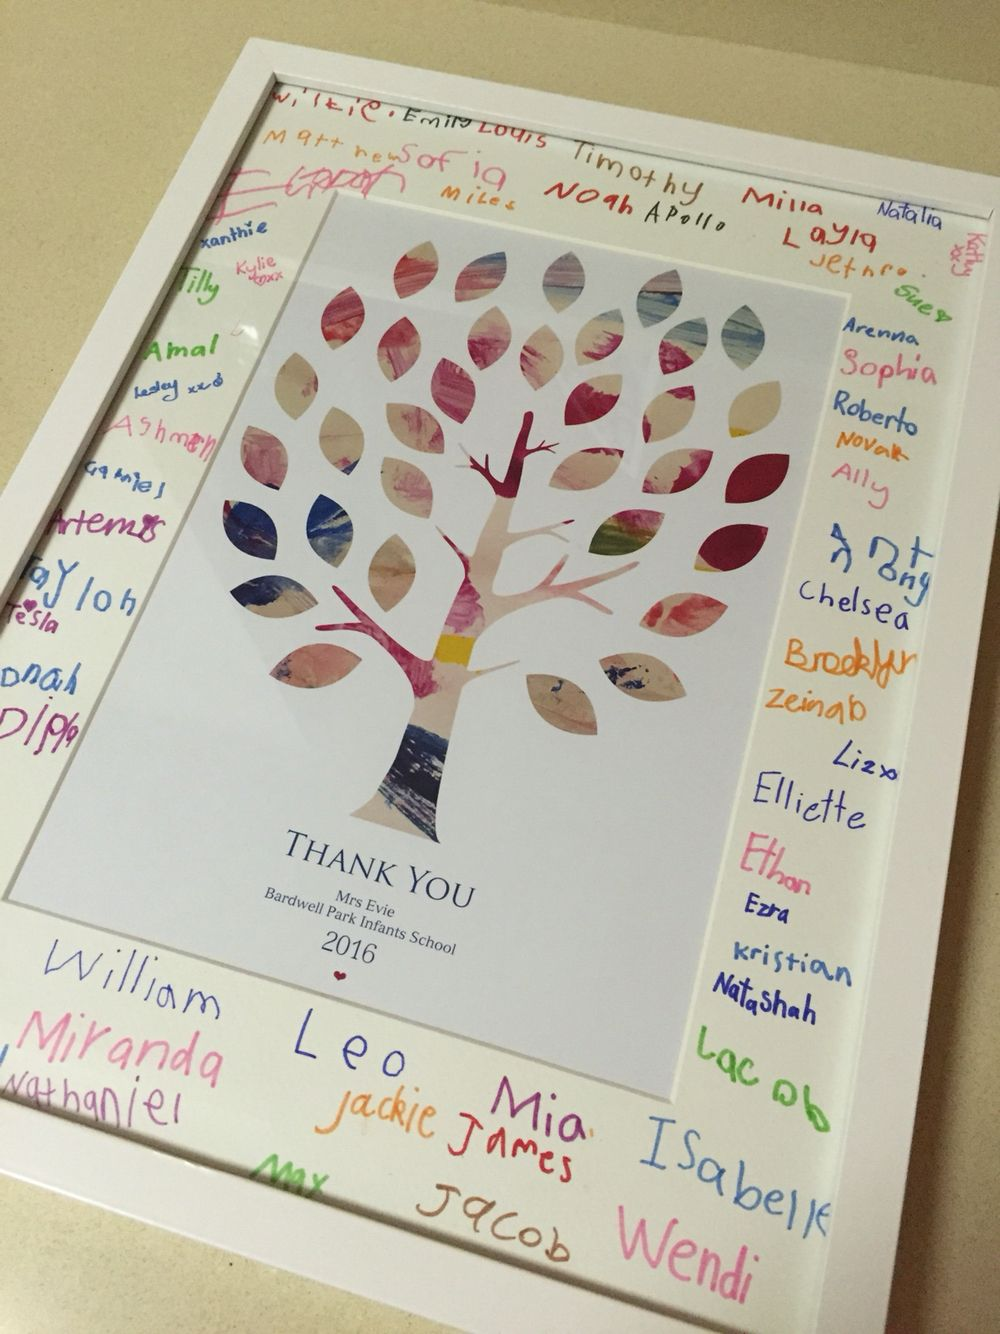 A farewell gift for a teacher … | Pinteres…